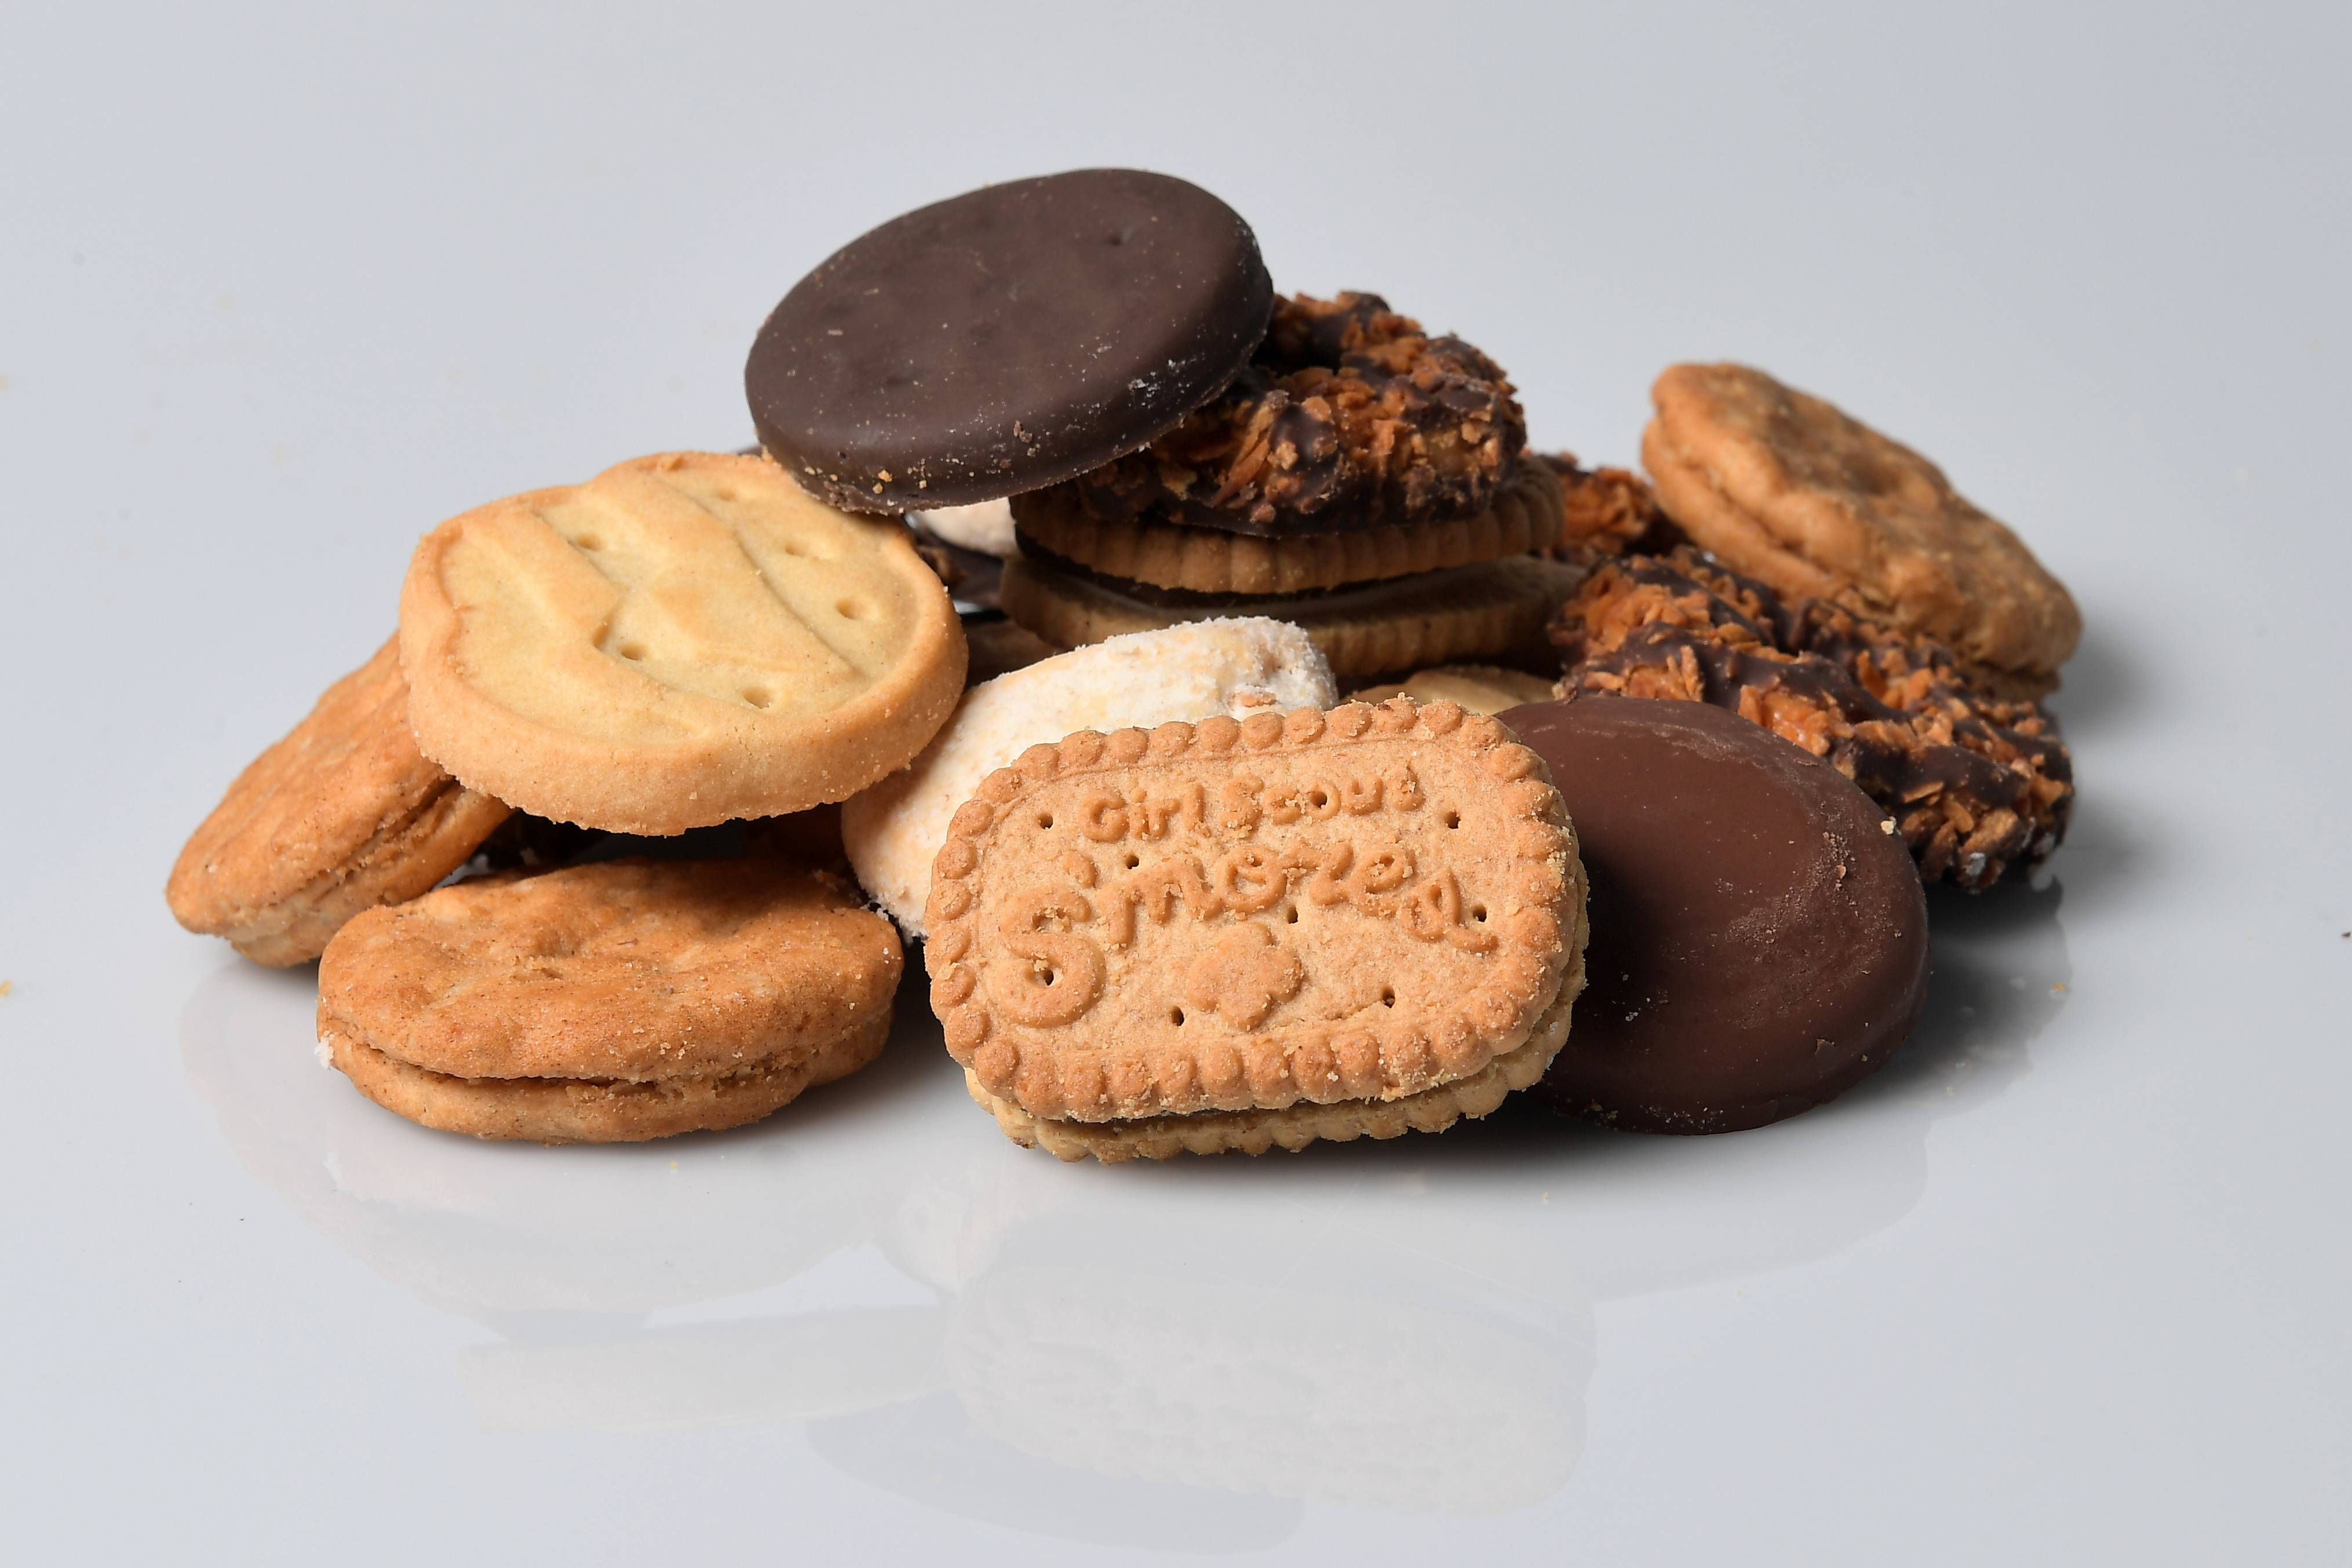 Girl Scout S'mores, Samoas, Do-si-dos, Tagalongs, Trefoils, Savannah Smiles and top seller Thin Mints. MUST CREDIT: